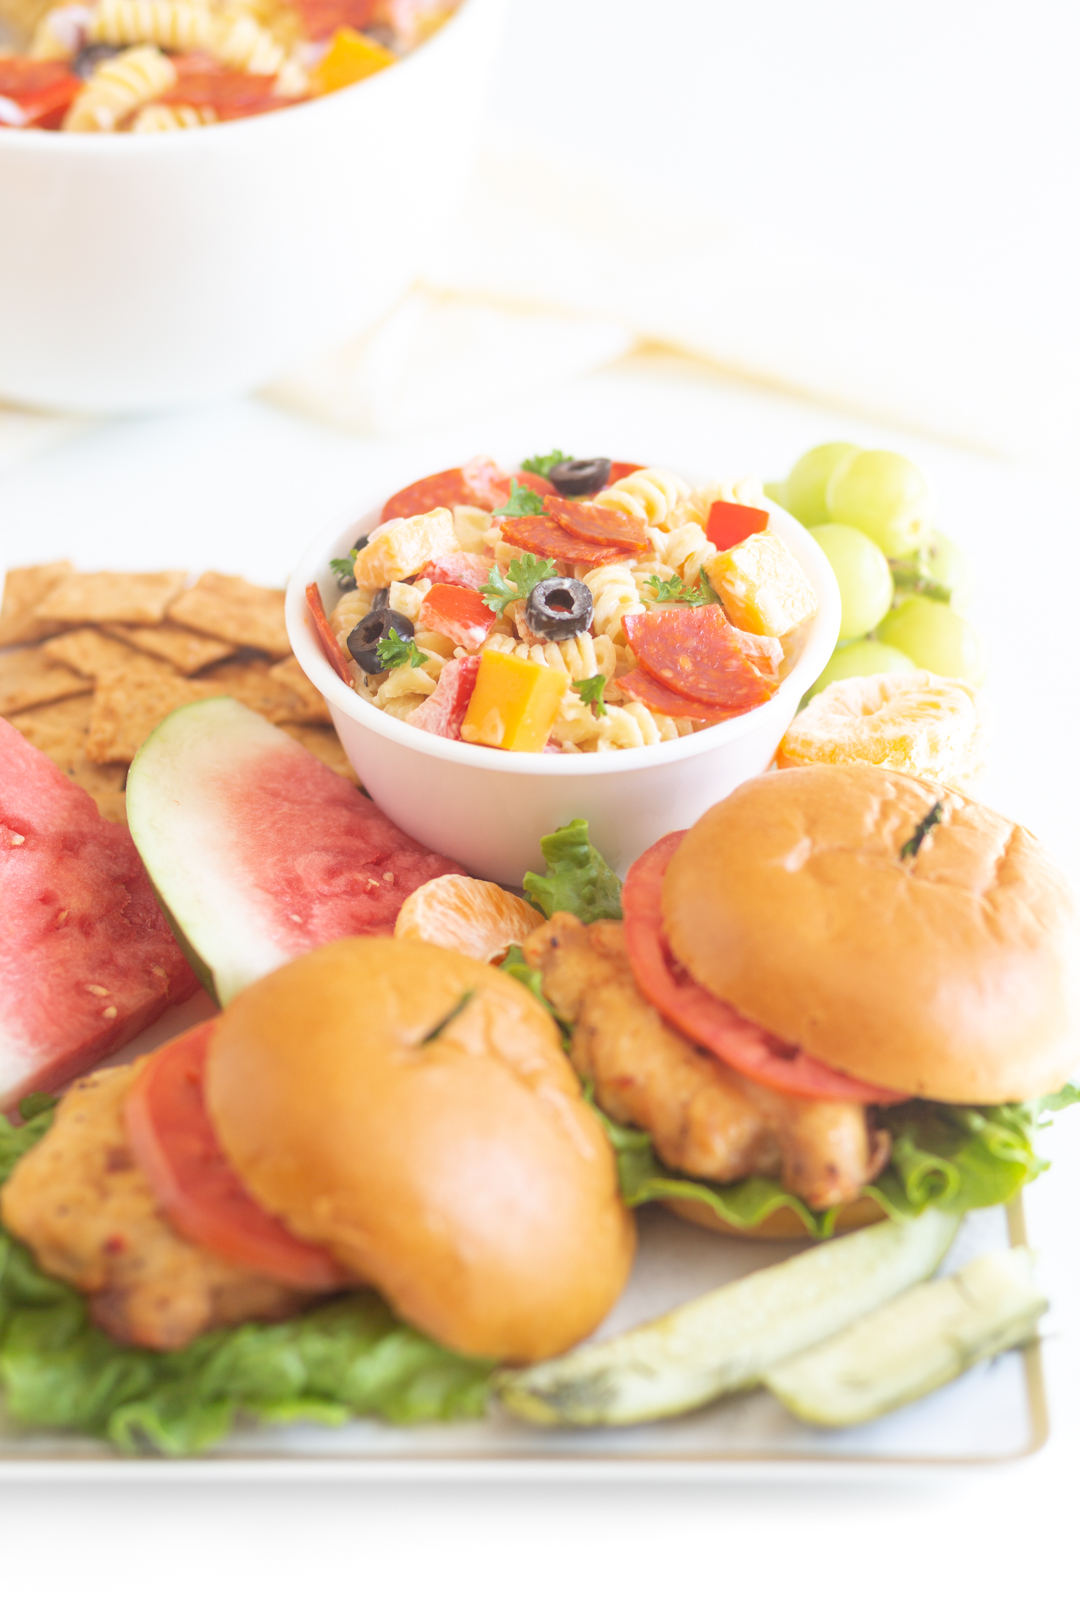 tray of barbecue items with chicken sandwiches, bowl of pasta salad, watermelon and more